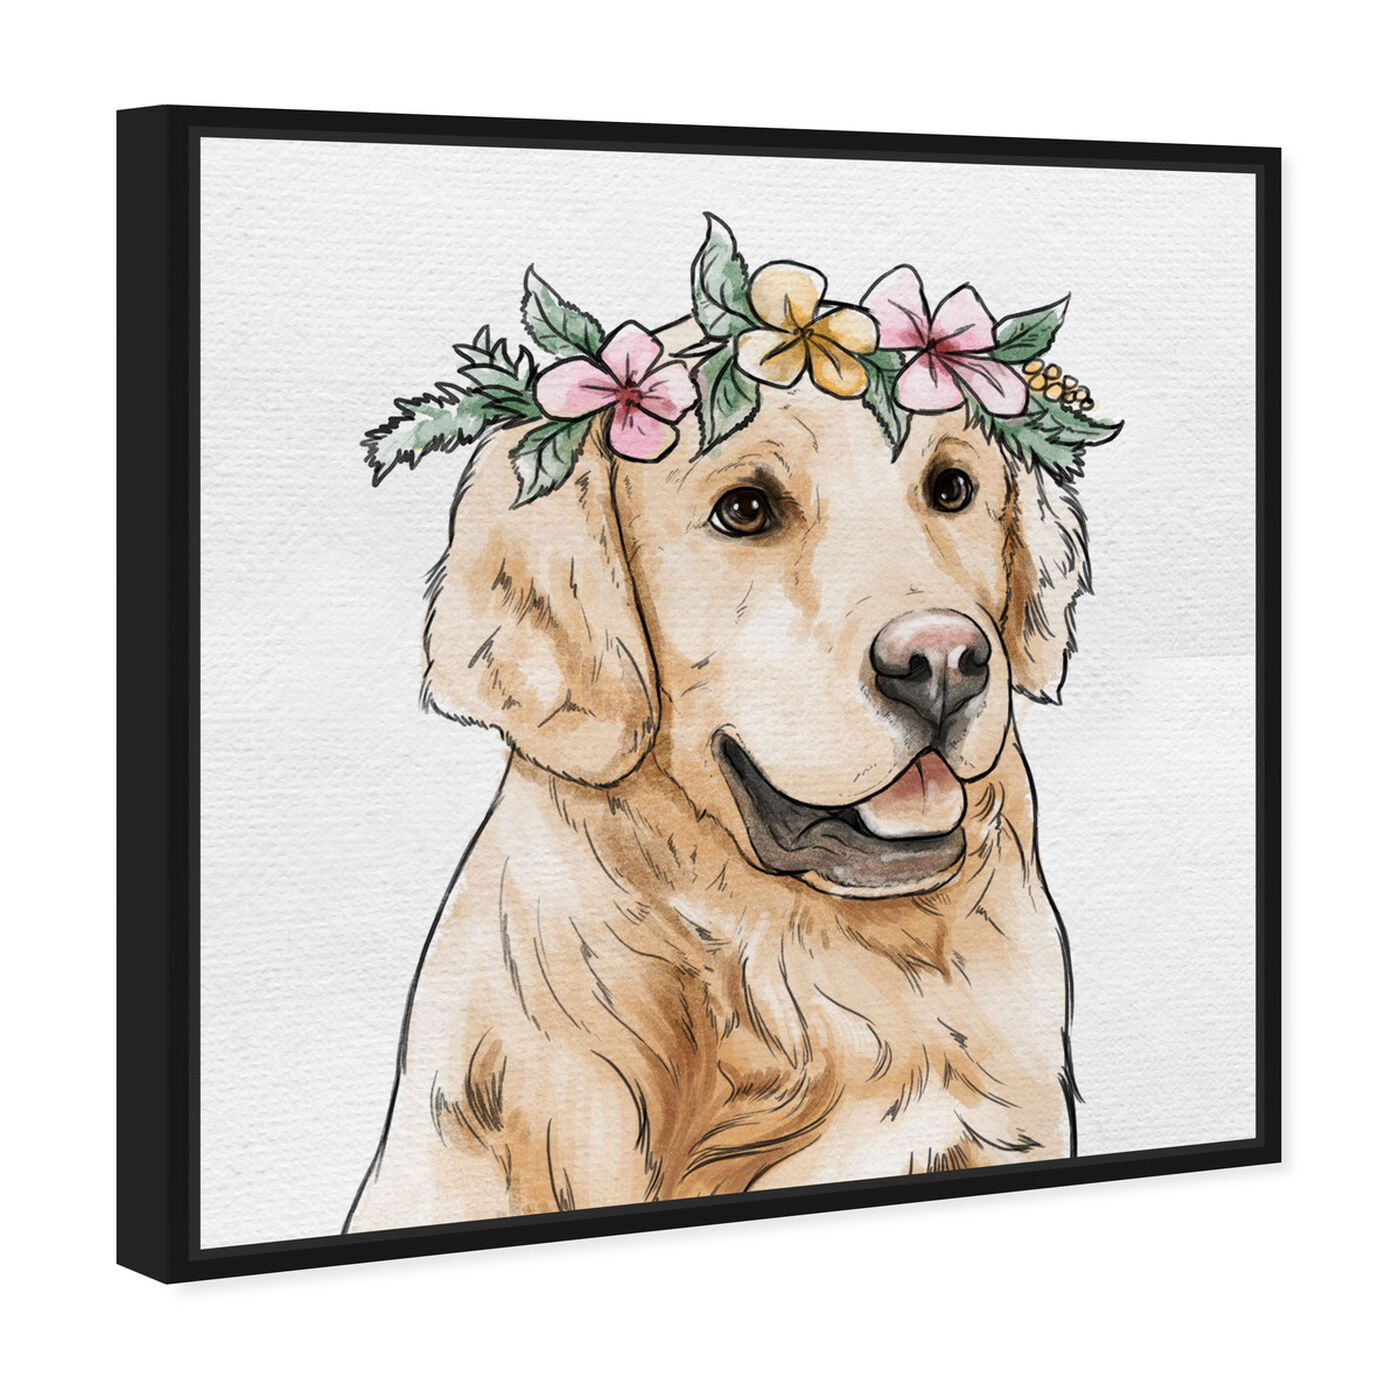 Angled view of Floral Crowned Golden Retriever featuring animals and dogs and puppies art.